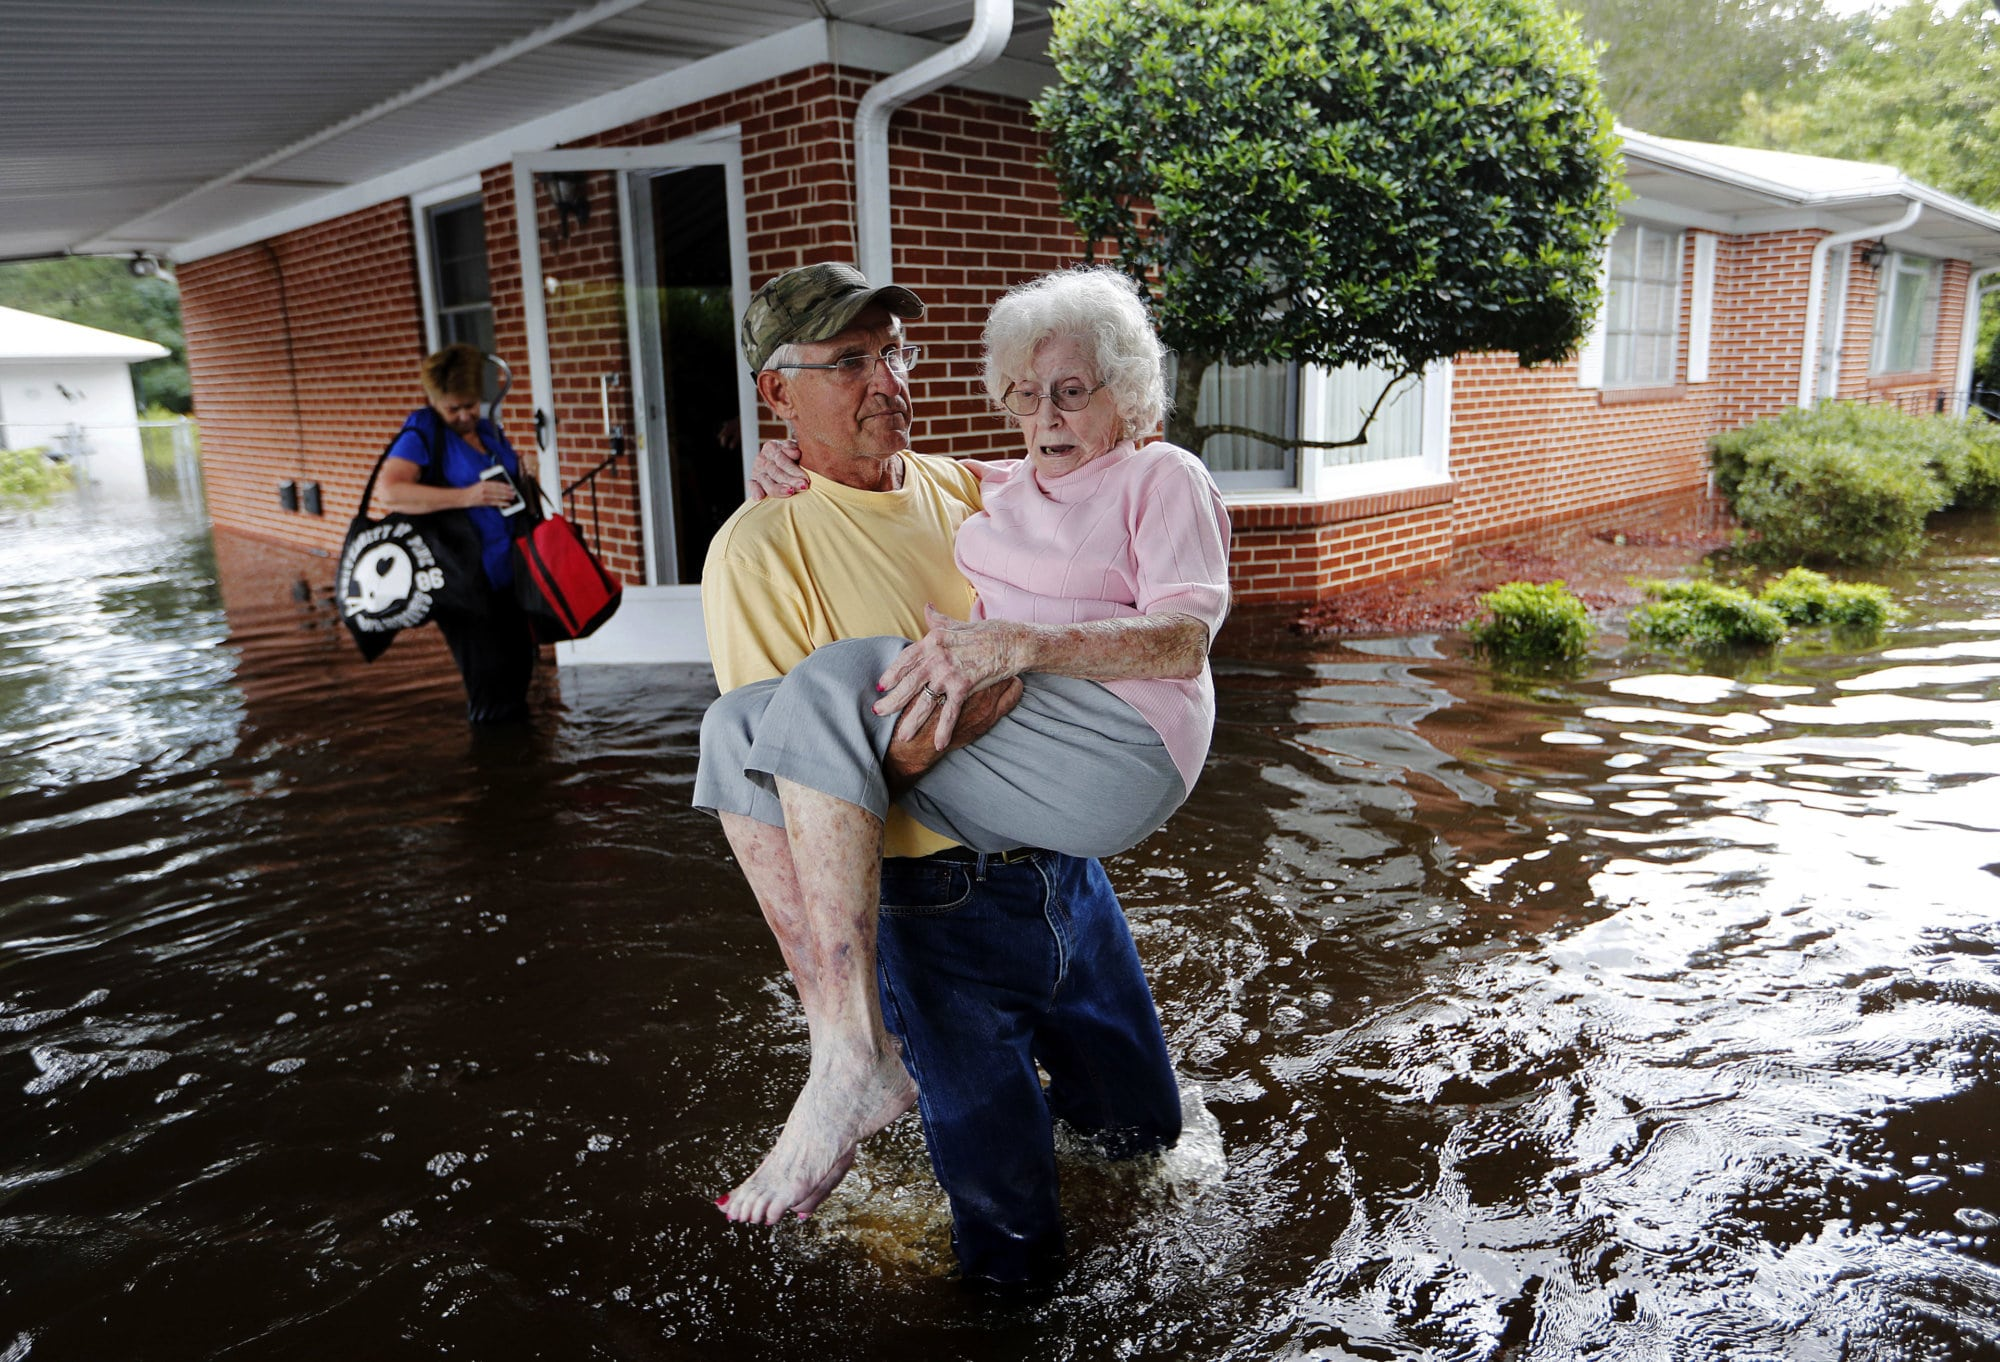 Bob Richling carries Iris Darden, 84, out of her flooded home as her daughter-in-law, Pam Darden, gathers her belongings in the aftermath of Hurricane Florence in Spring Lake, N.C. on Sept. 17, 2018. (AP Photo/David Goldman)